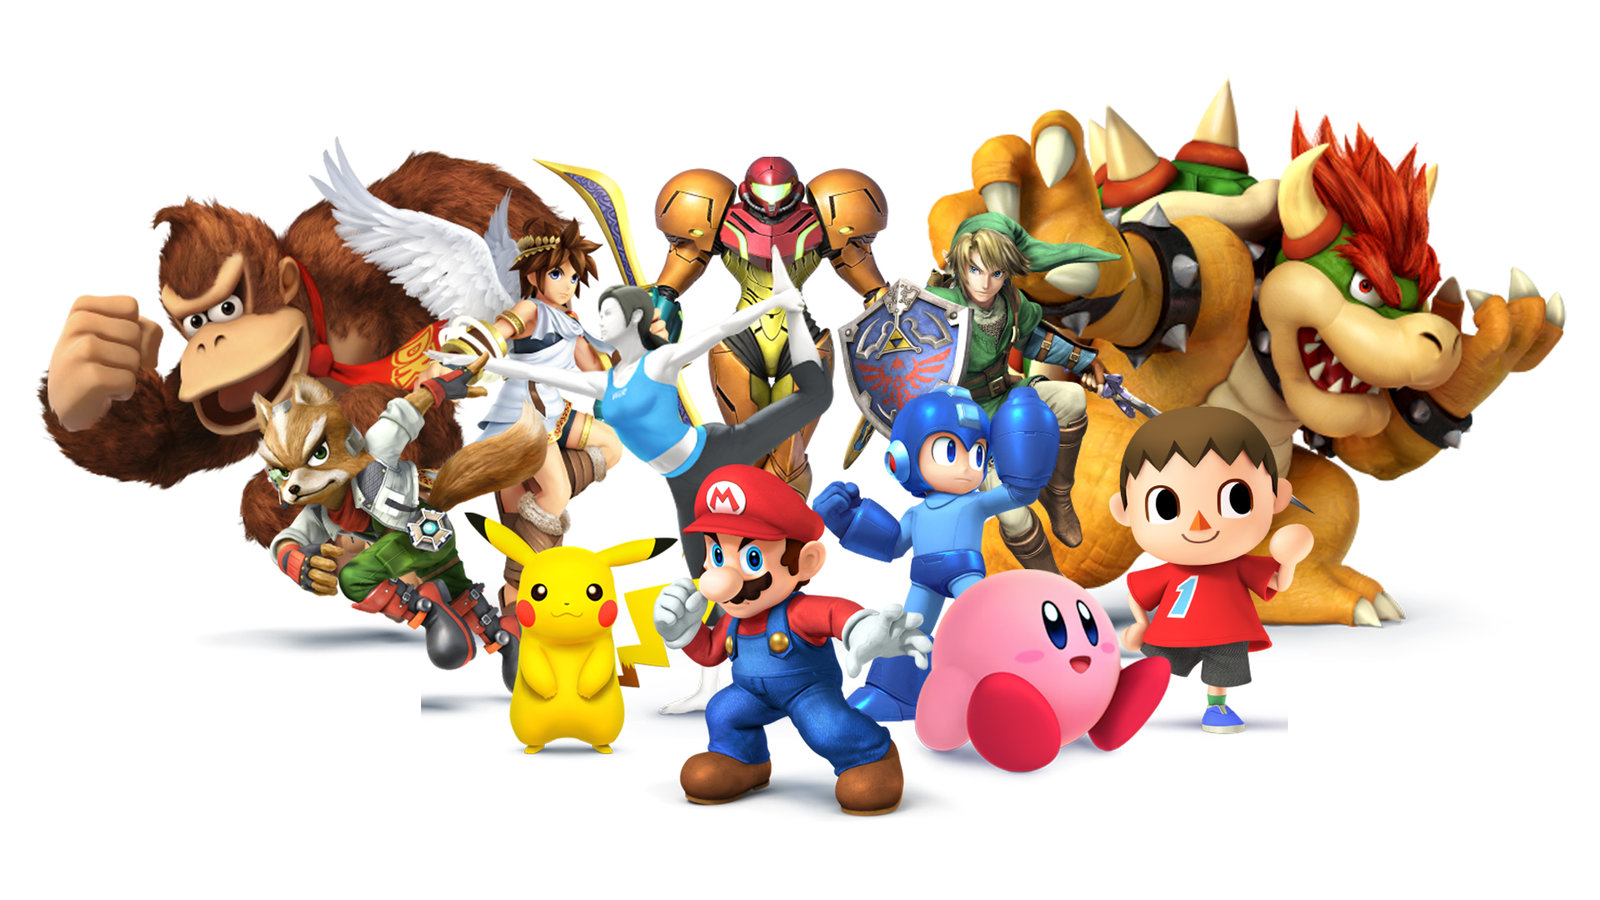 Tannenbaum Animation.Super Smash Bros Club Brings Students Together With Friendly